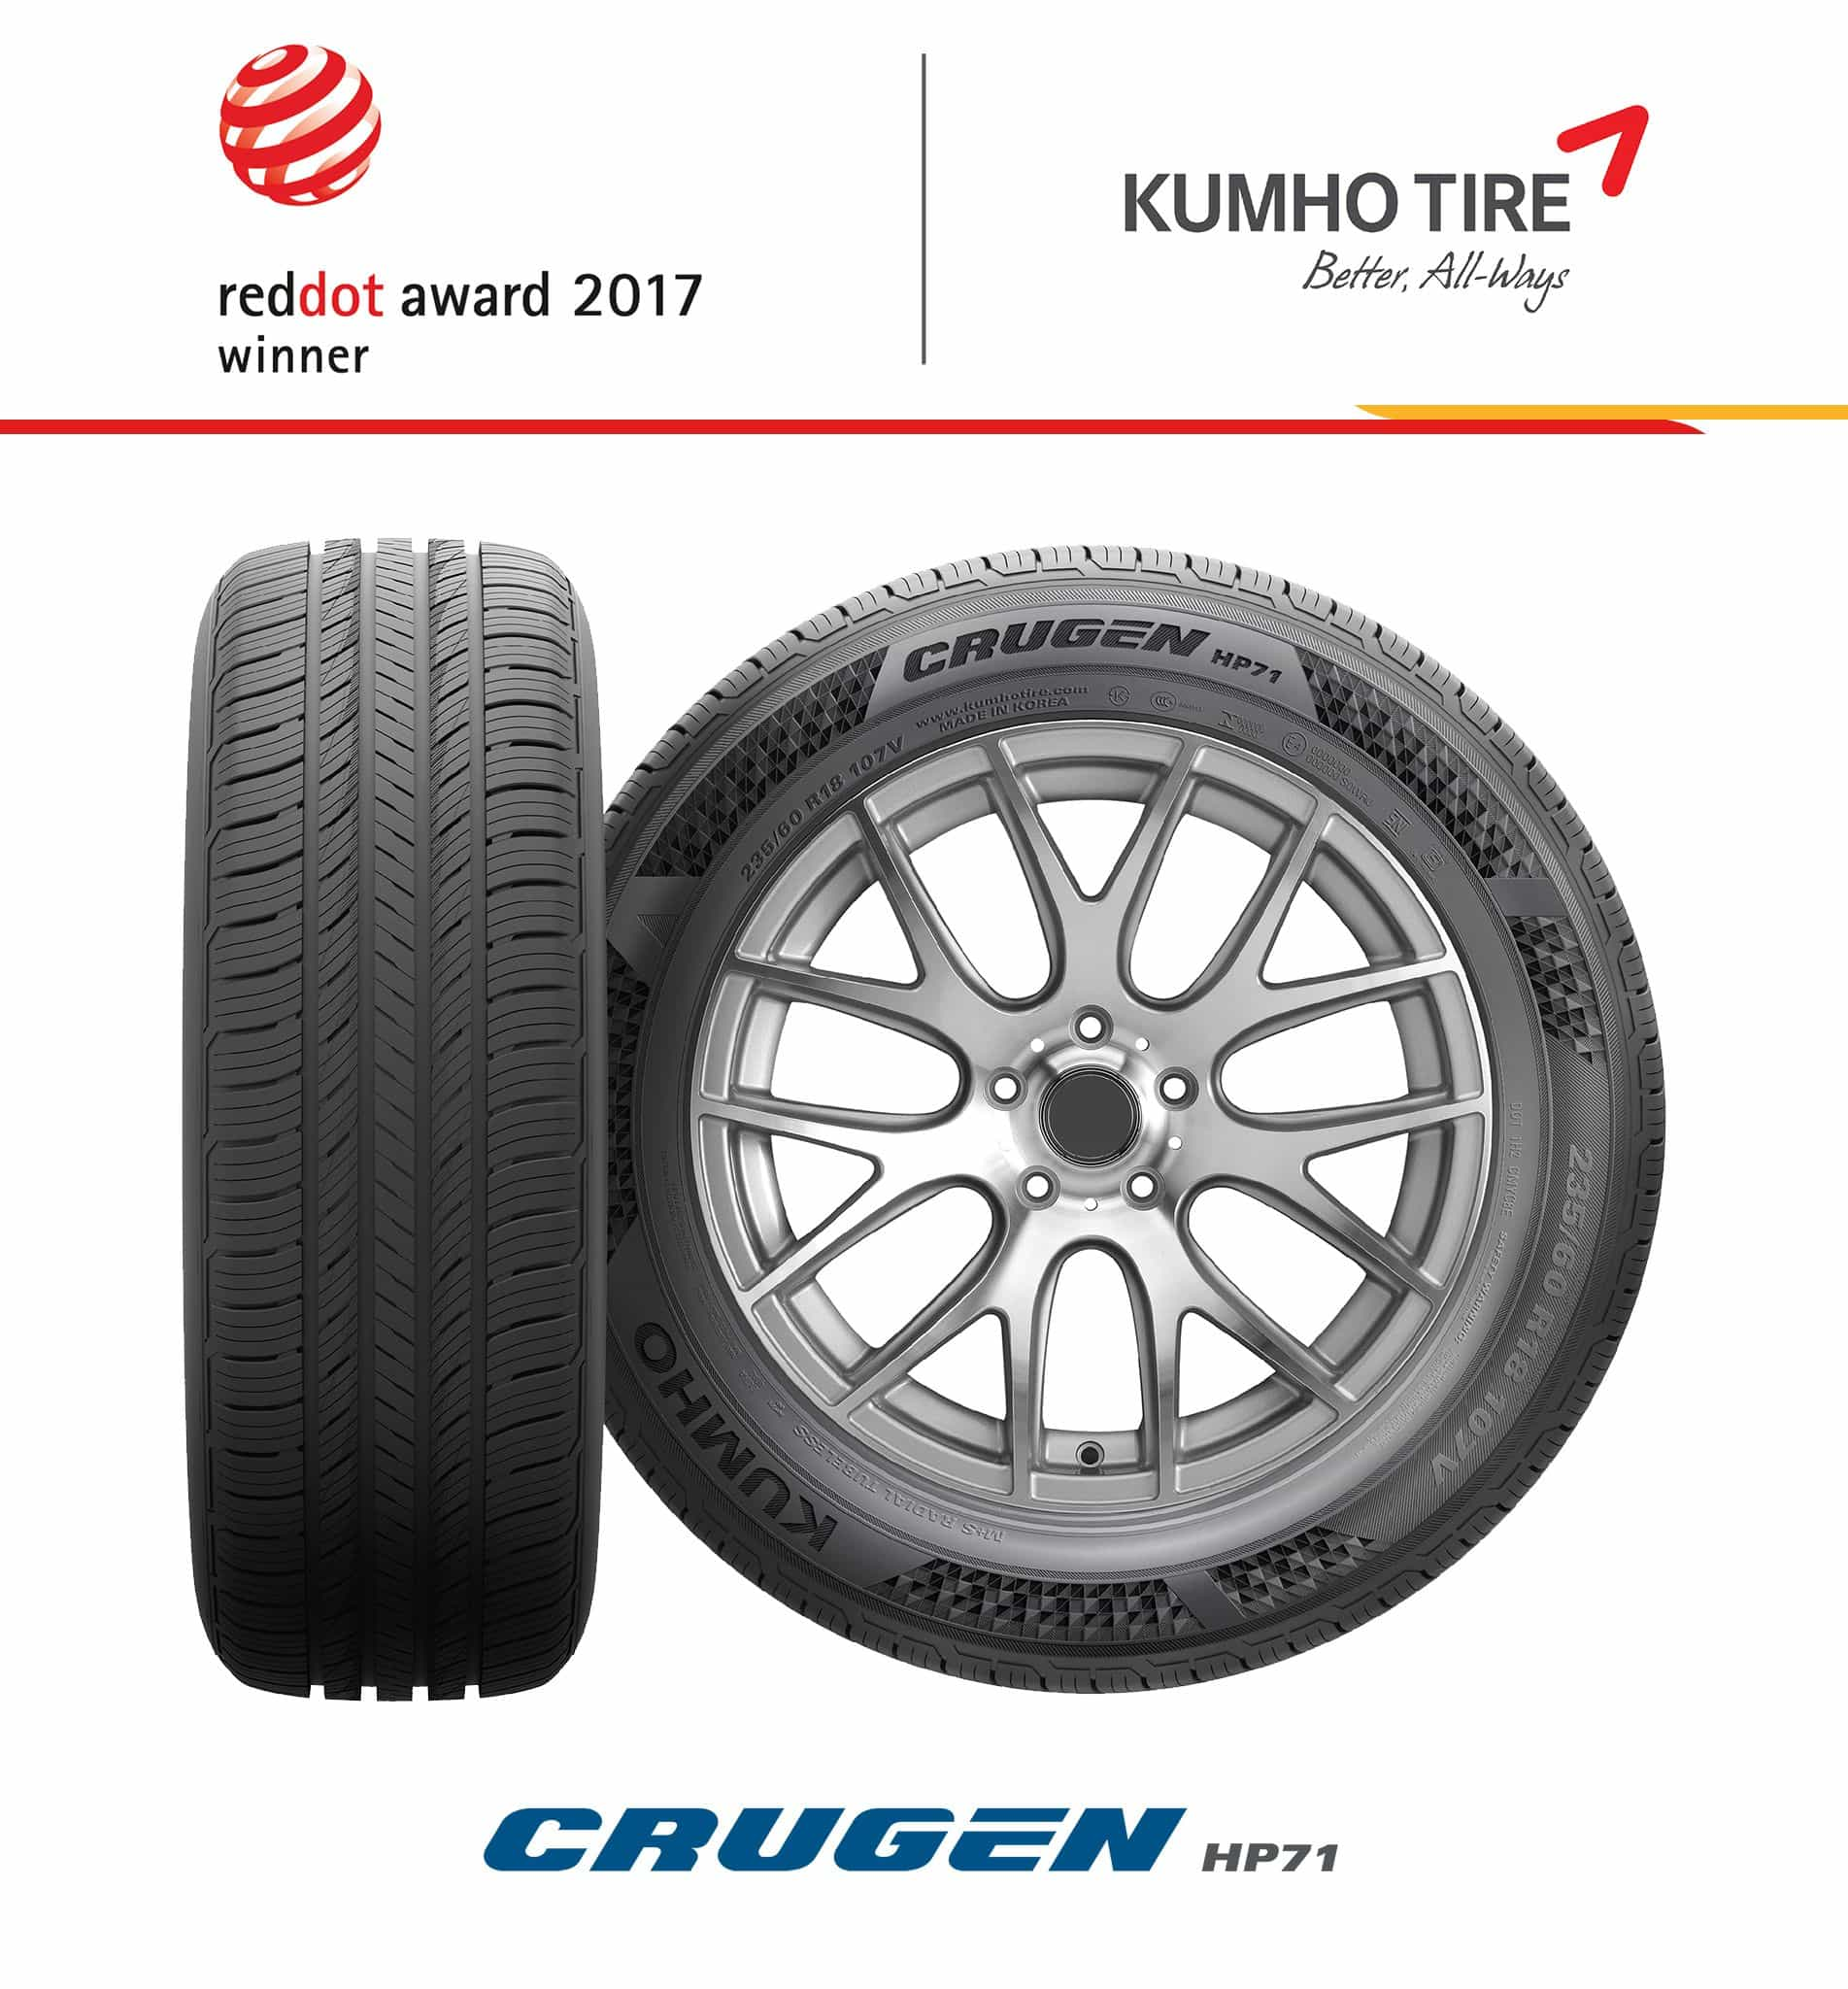 Kumho Tyre Wins Red Dot Award For Product Design